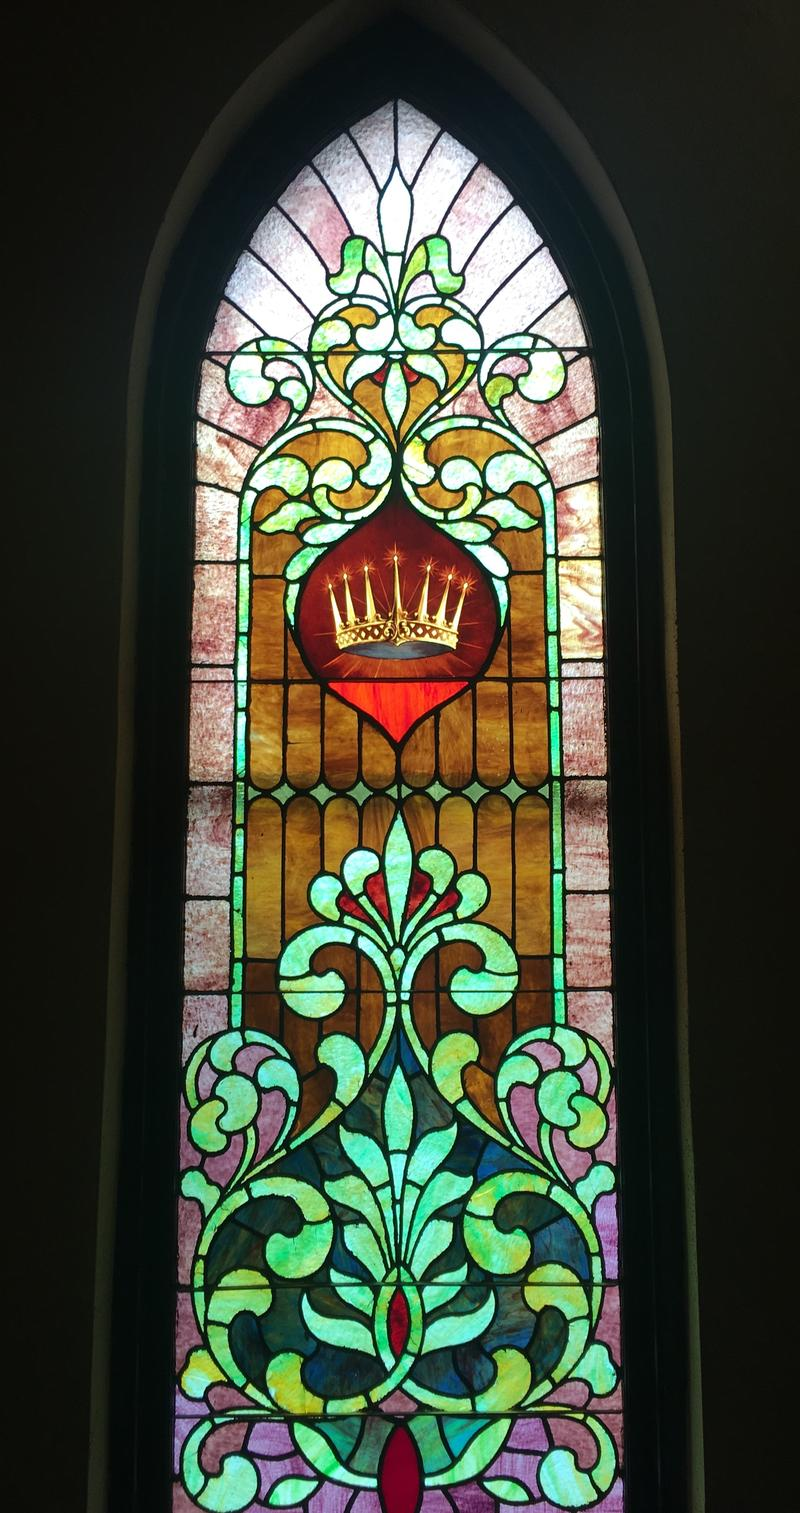 All the windows inside the Ypsi are stained glass.